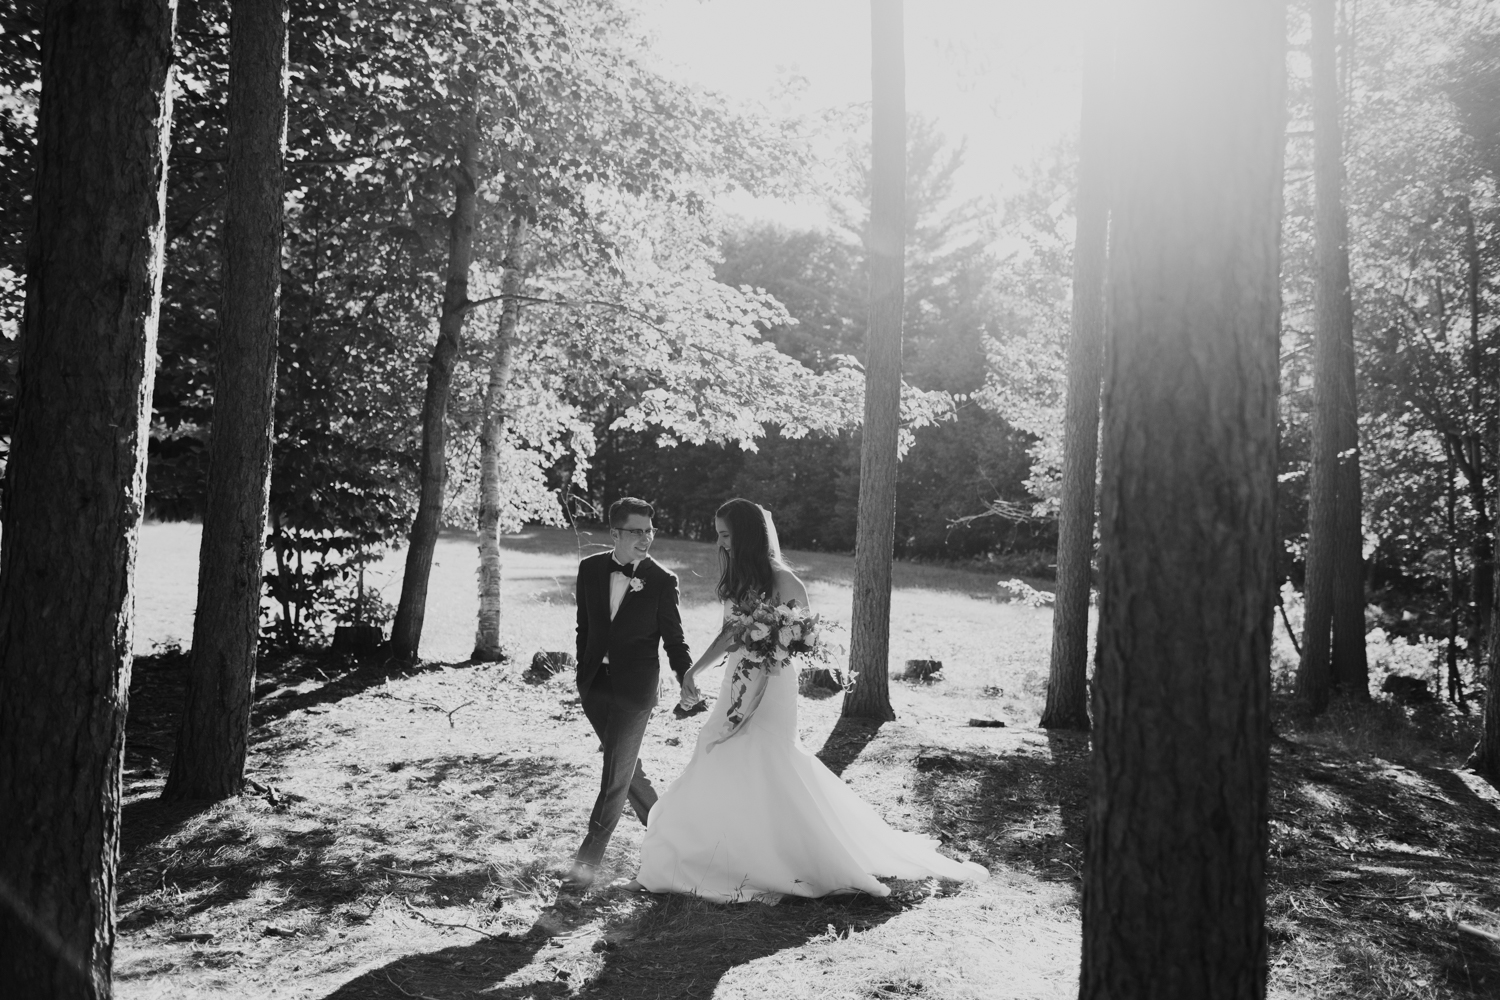 Muskoka wedding ceremony location